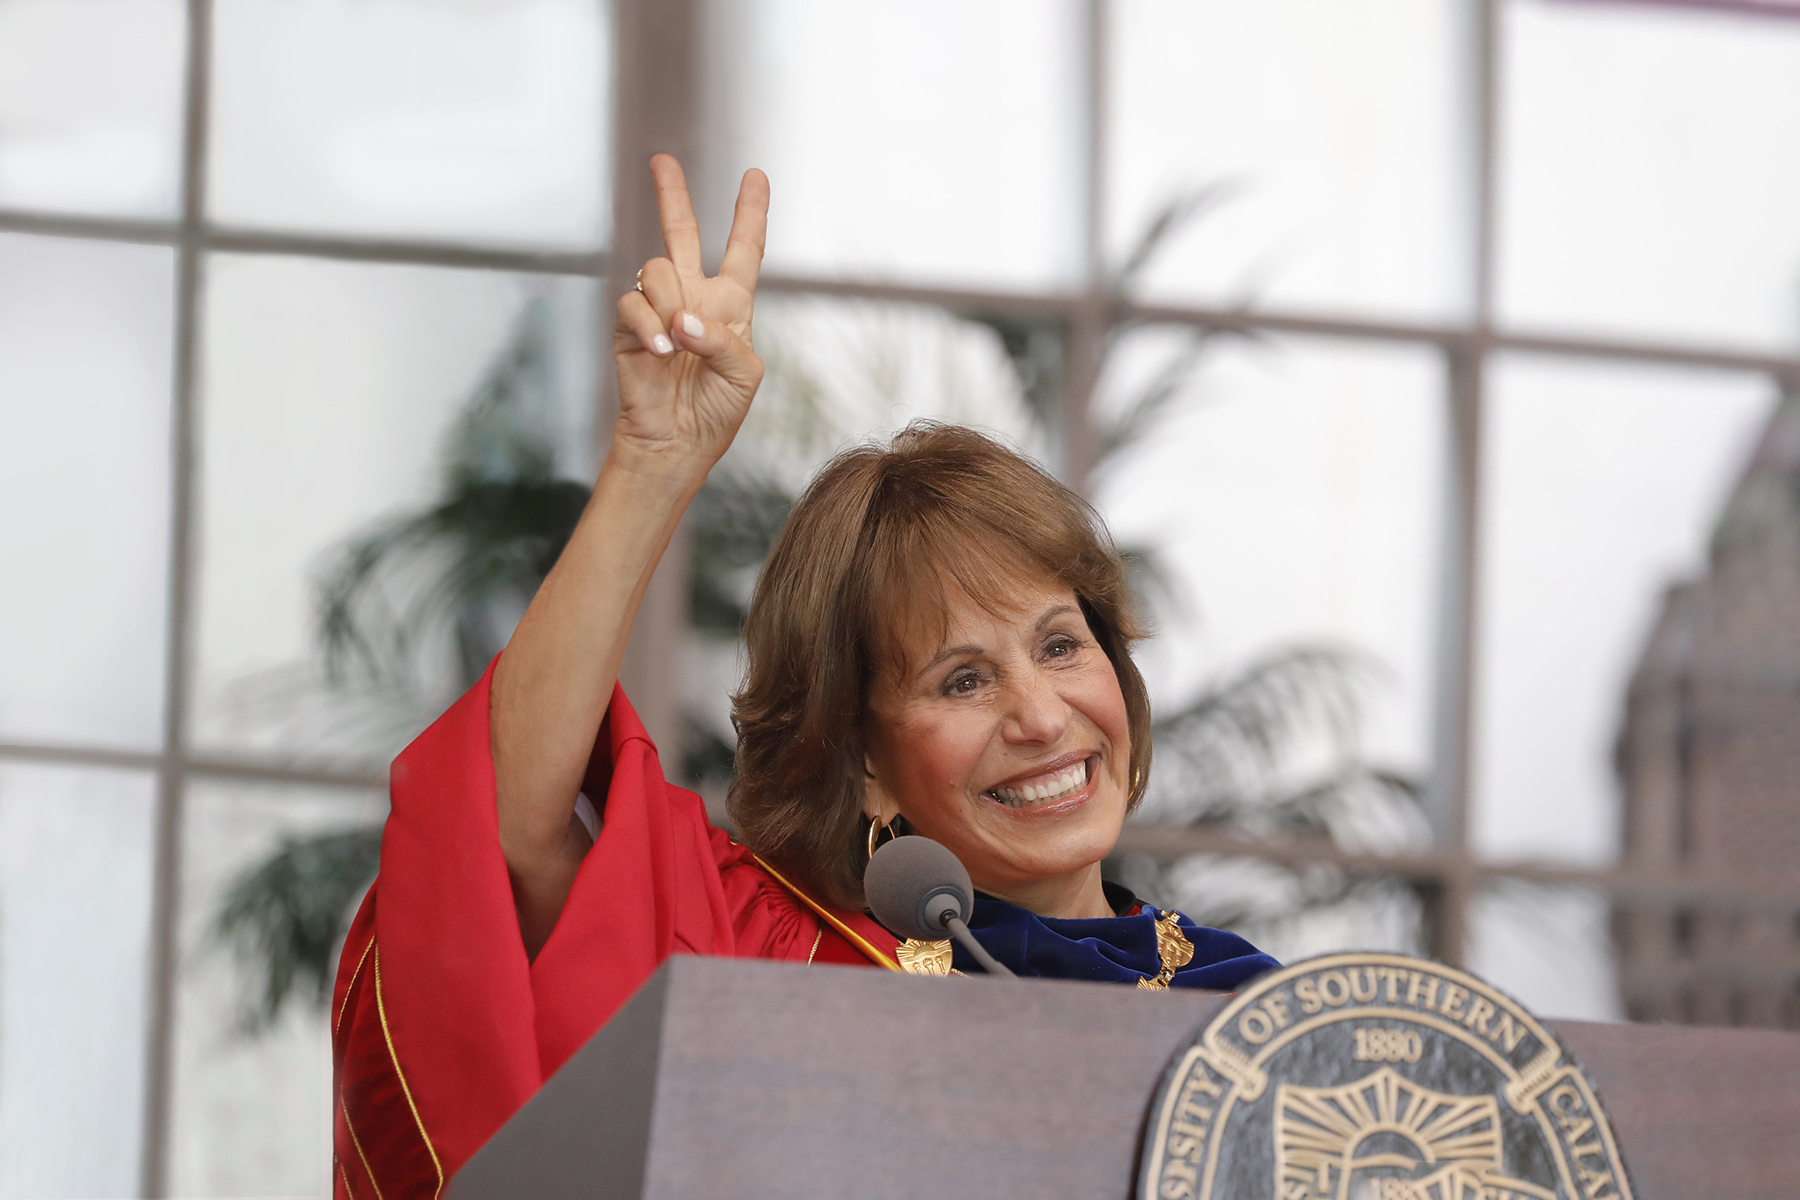 Carol Folt shows the victory sign to the crowd during commencement